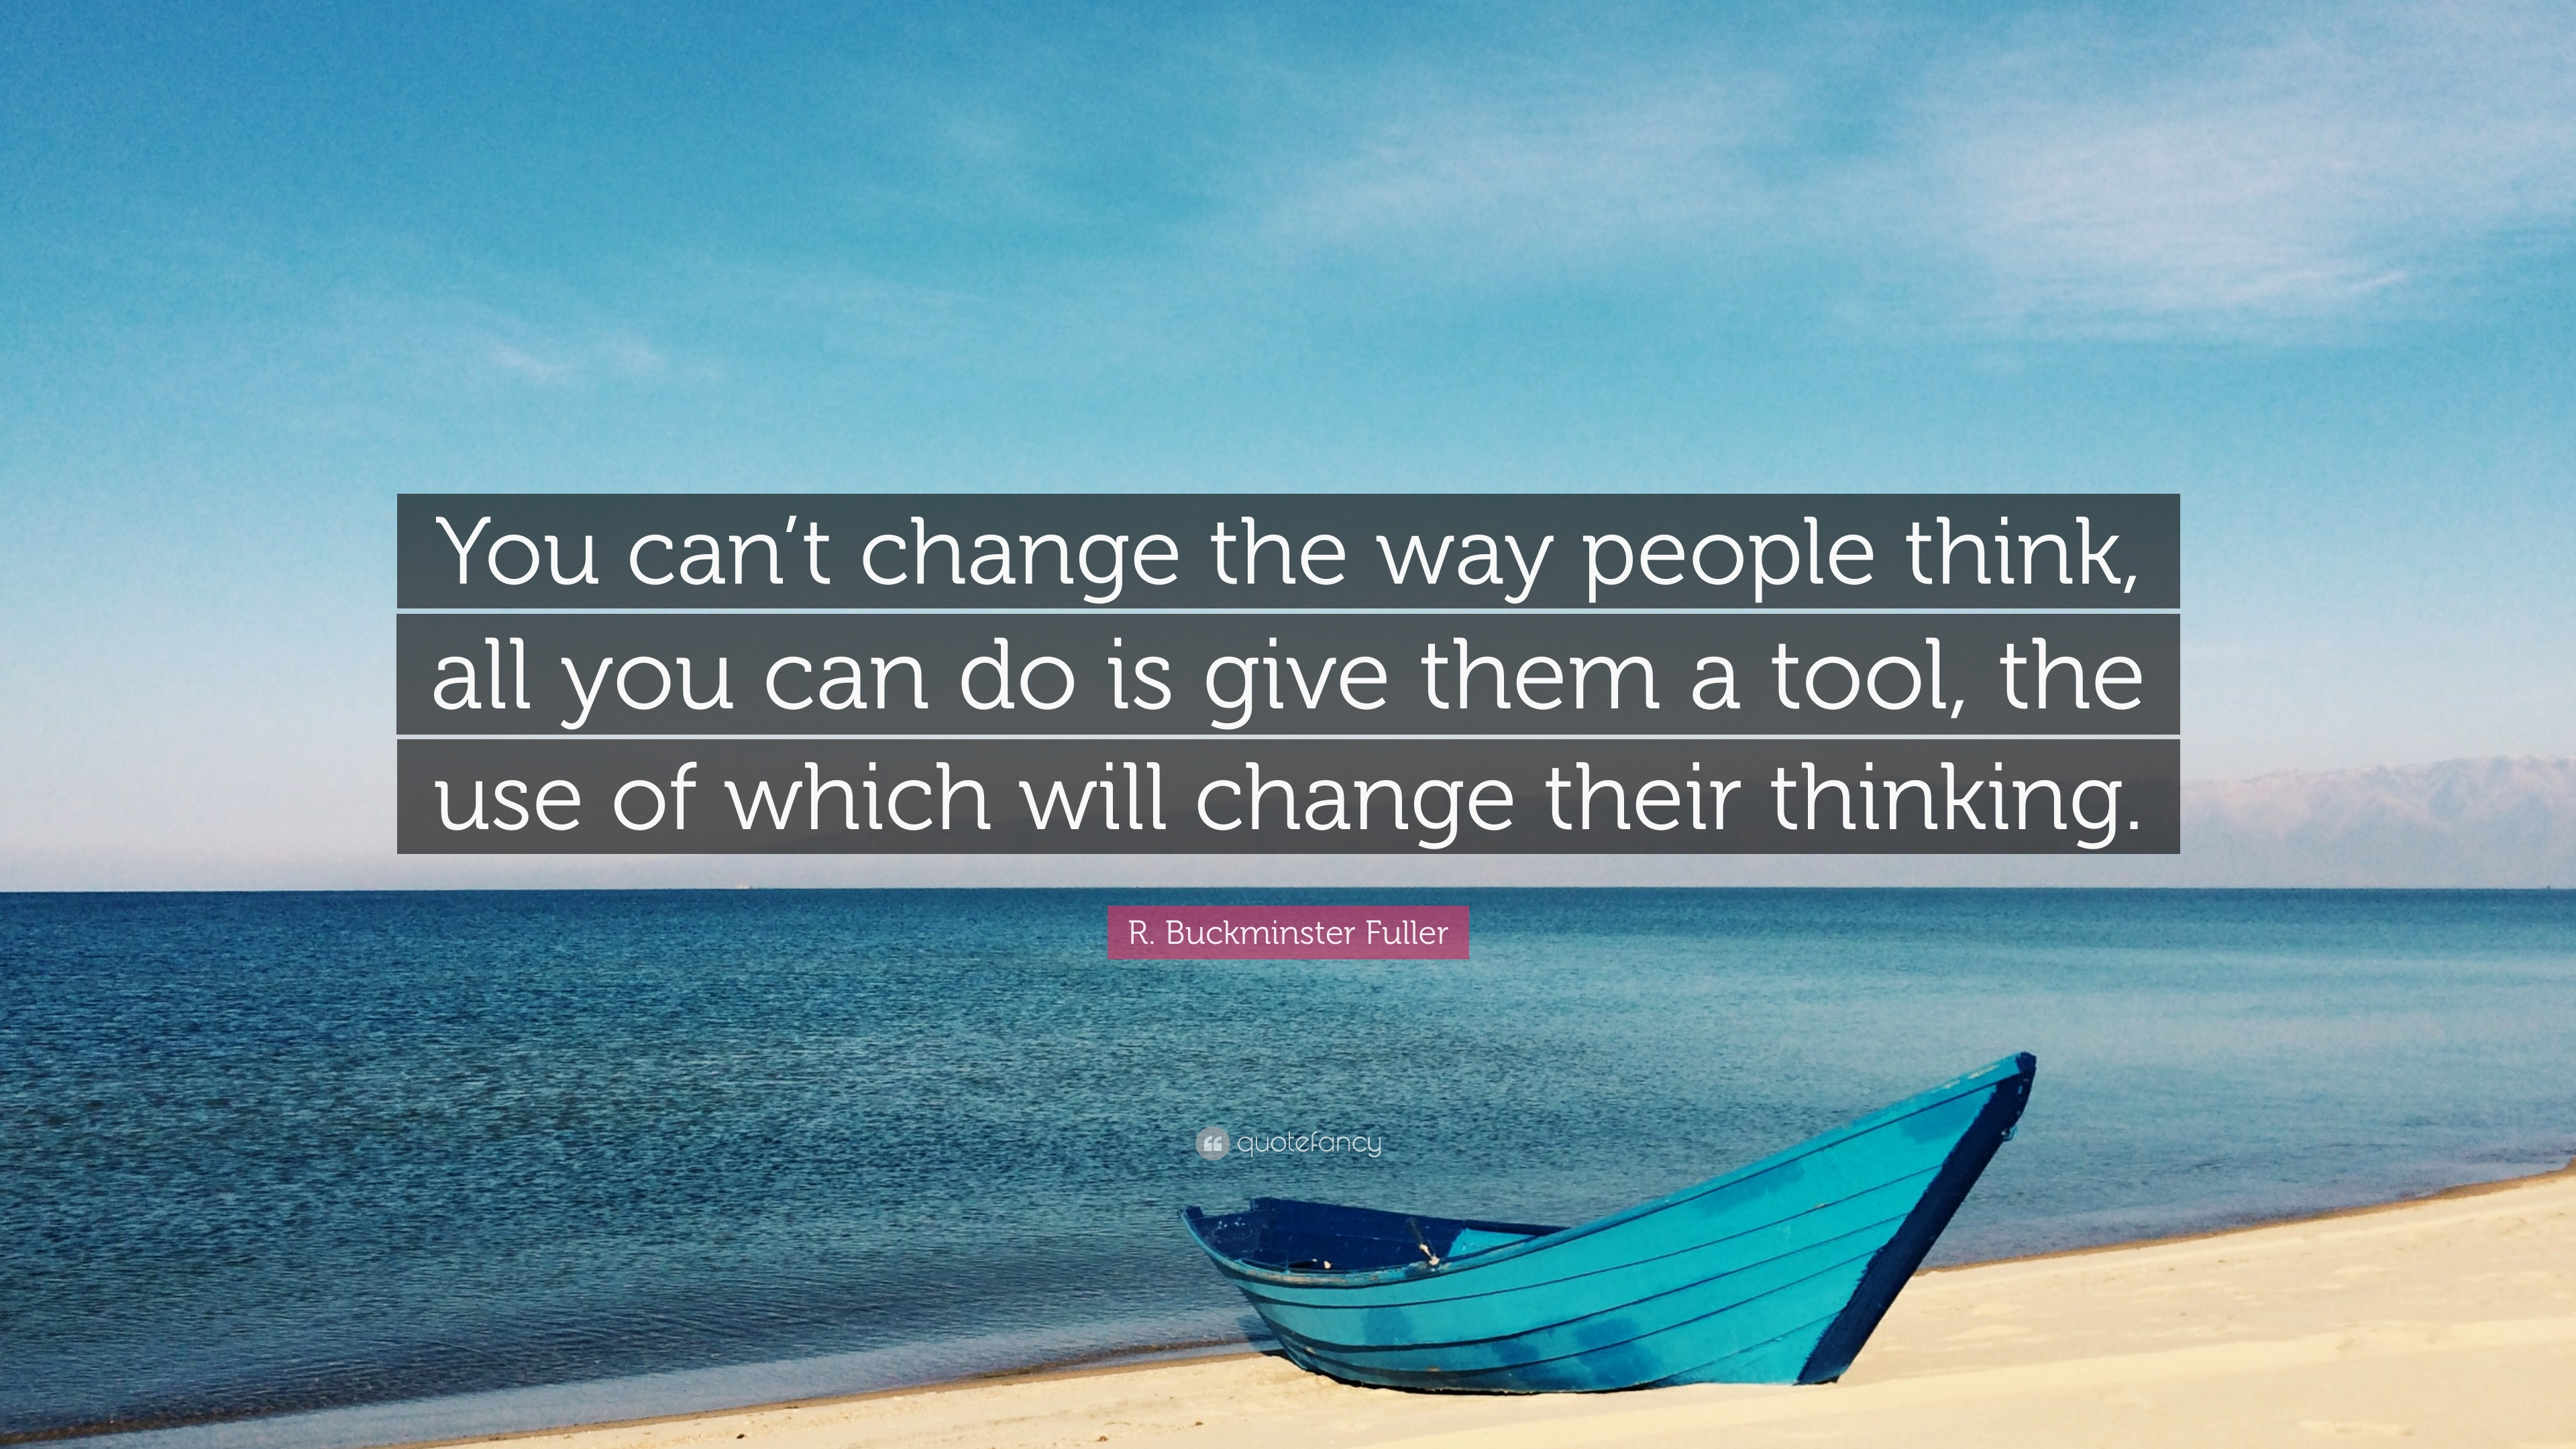 Merveilleux R. Buckminster Fuller Quote: U201cYou Canu0027t Change The Way People Think